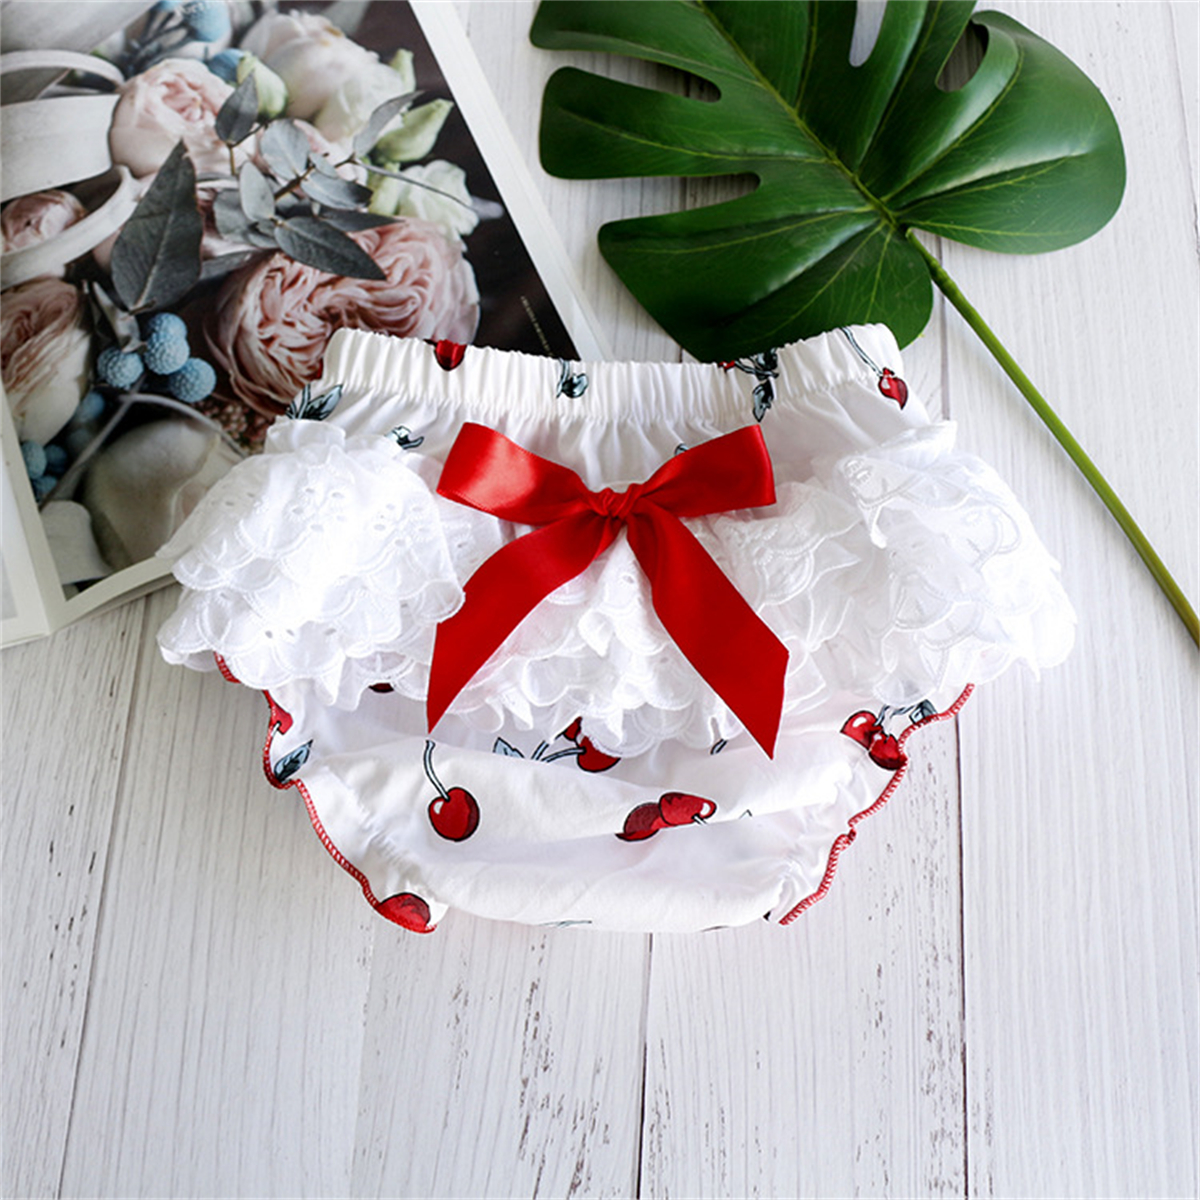 Baby Girls Shorts Baby Bloomers Summer 2-Pieces Headband Shorts Set Chic Floral Printed Clothes Newborn Bloomers Infant PP Pants